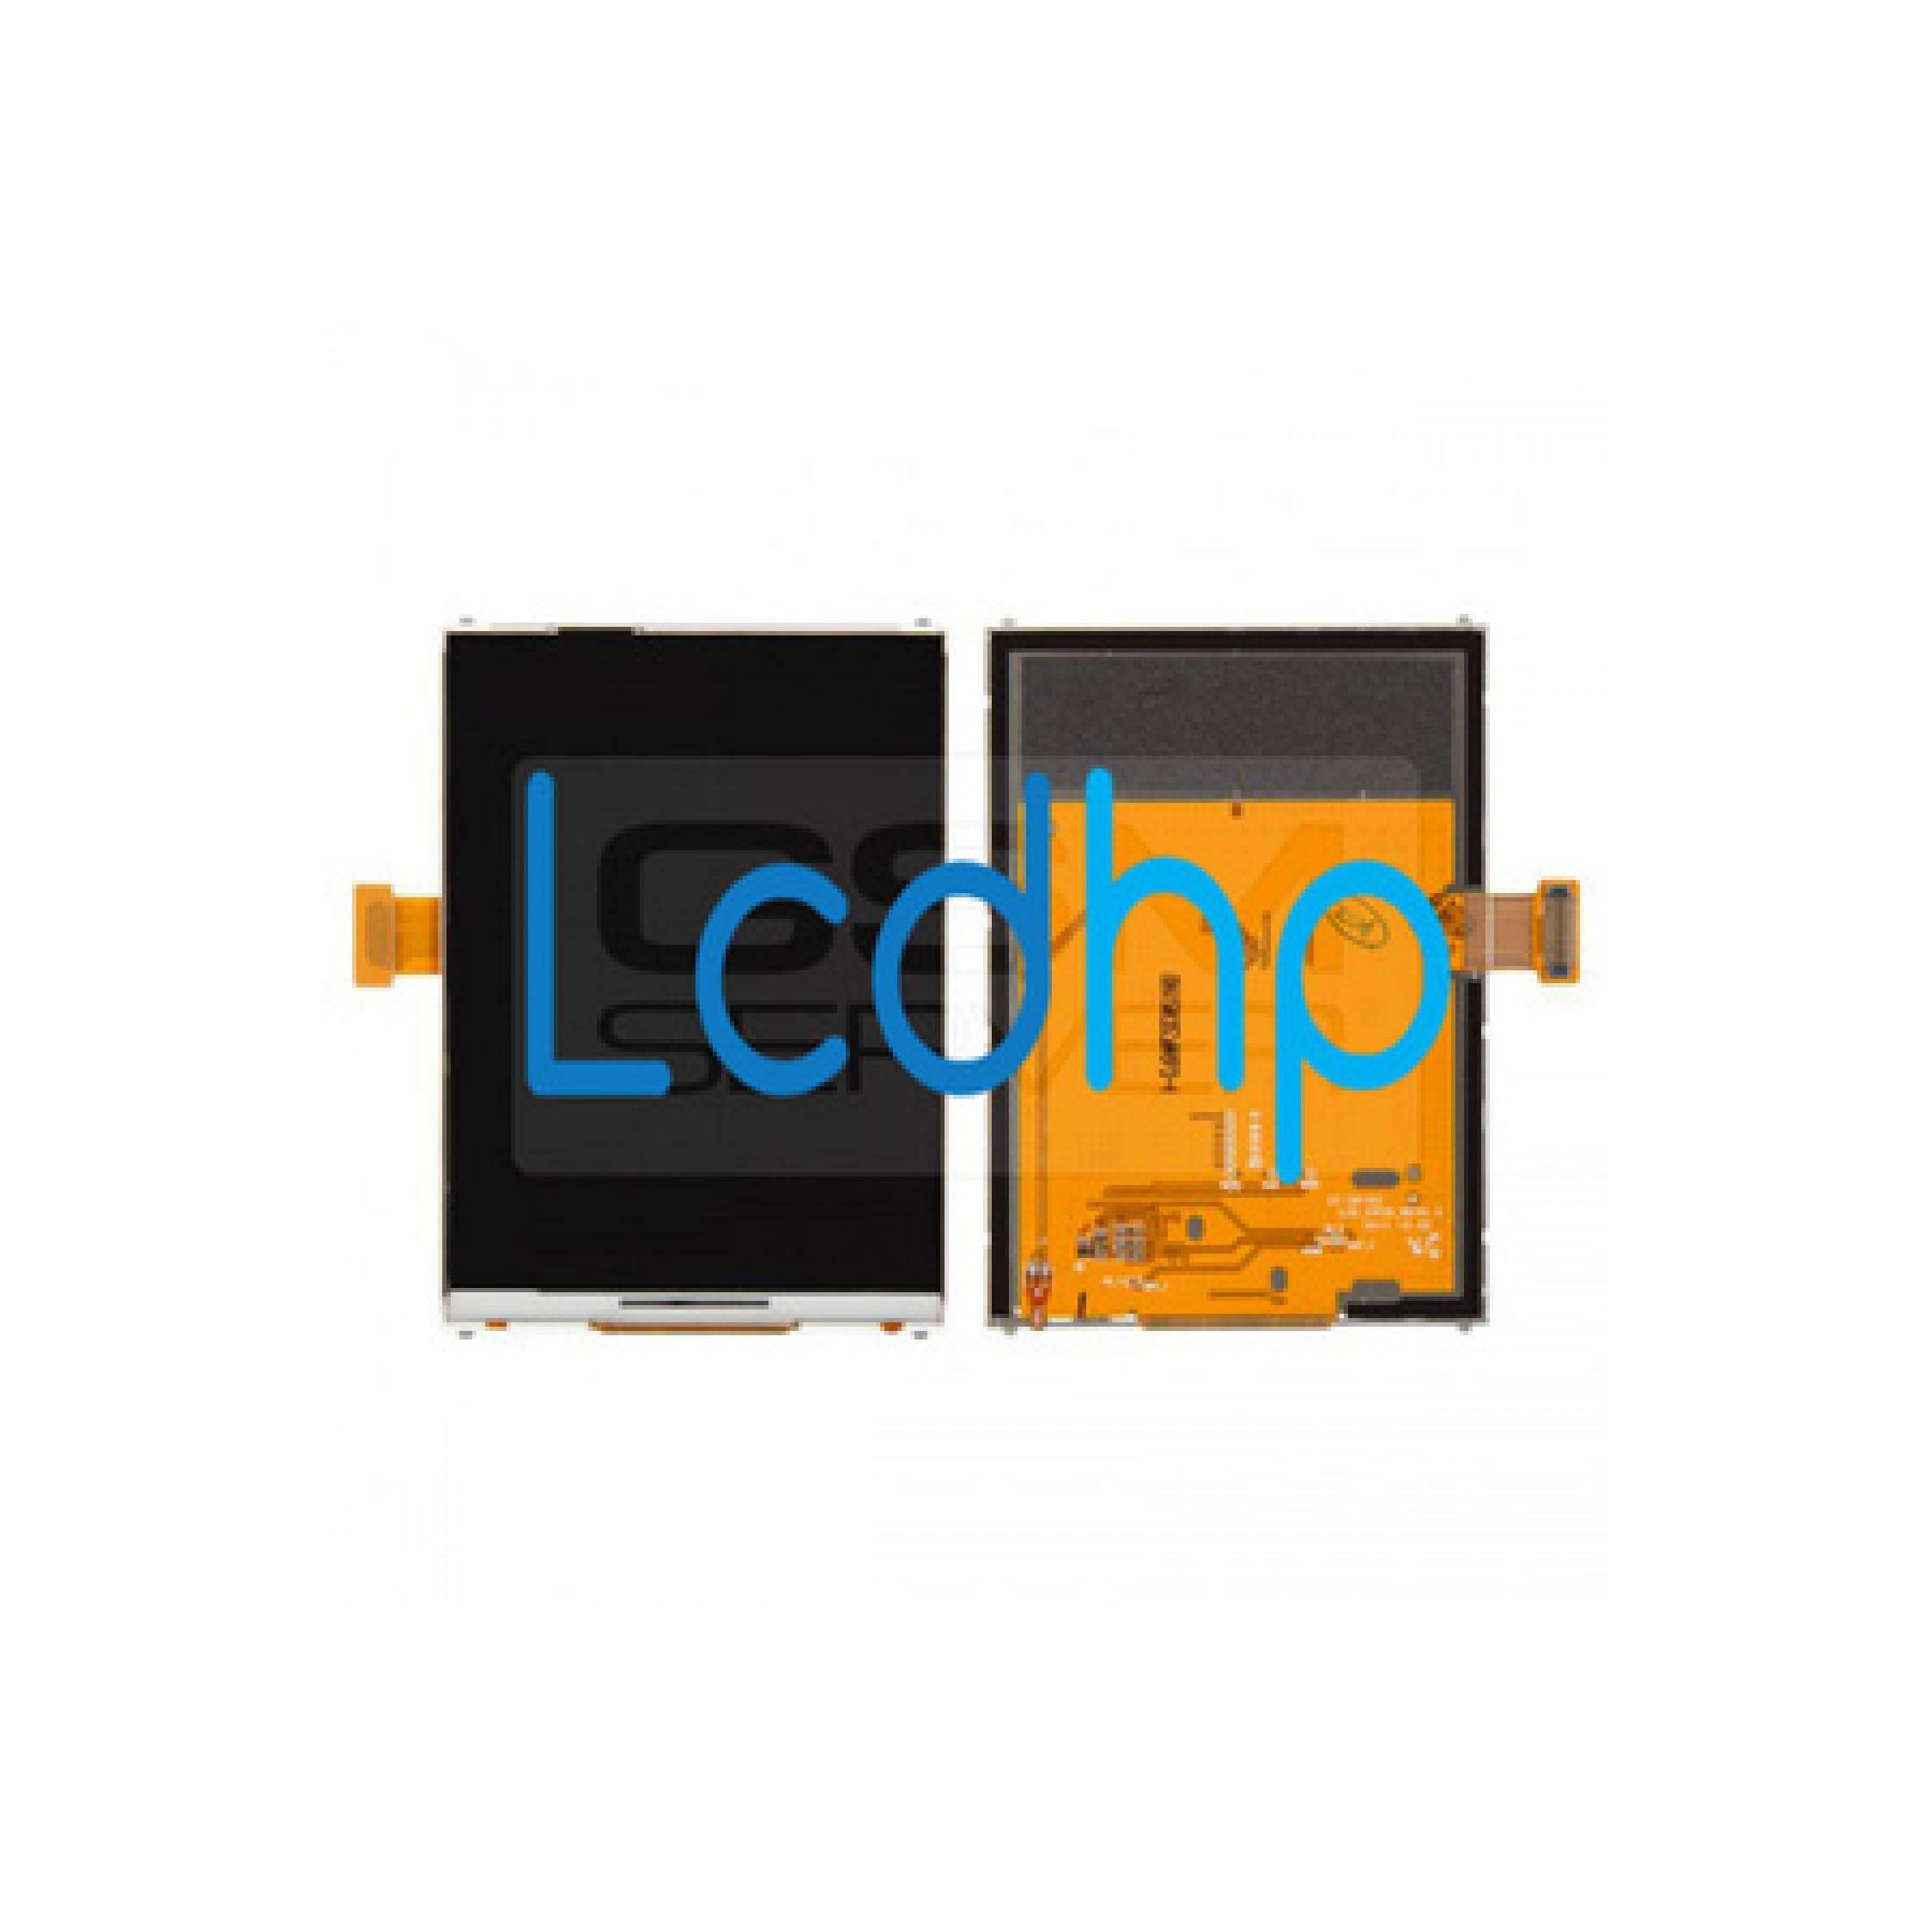 Vizz Battery Double Power For Samsung S5360 S5368 5380 Young S6102 Switch Onoff I8190 Tombol On Off S3 Mini Lcd Galaxy Y Duos Gt 6102 Original Ori